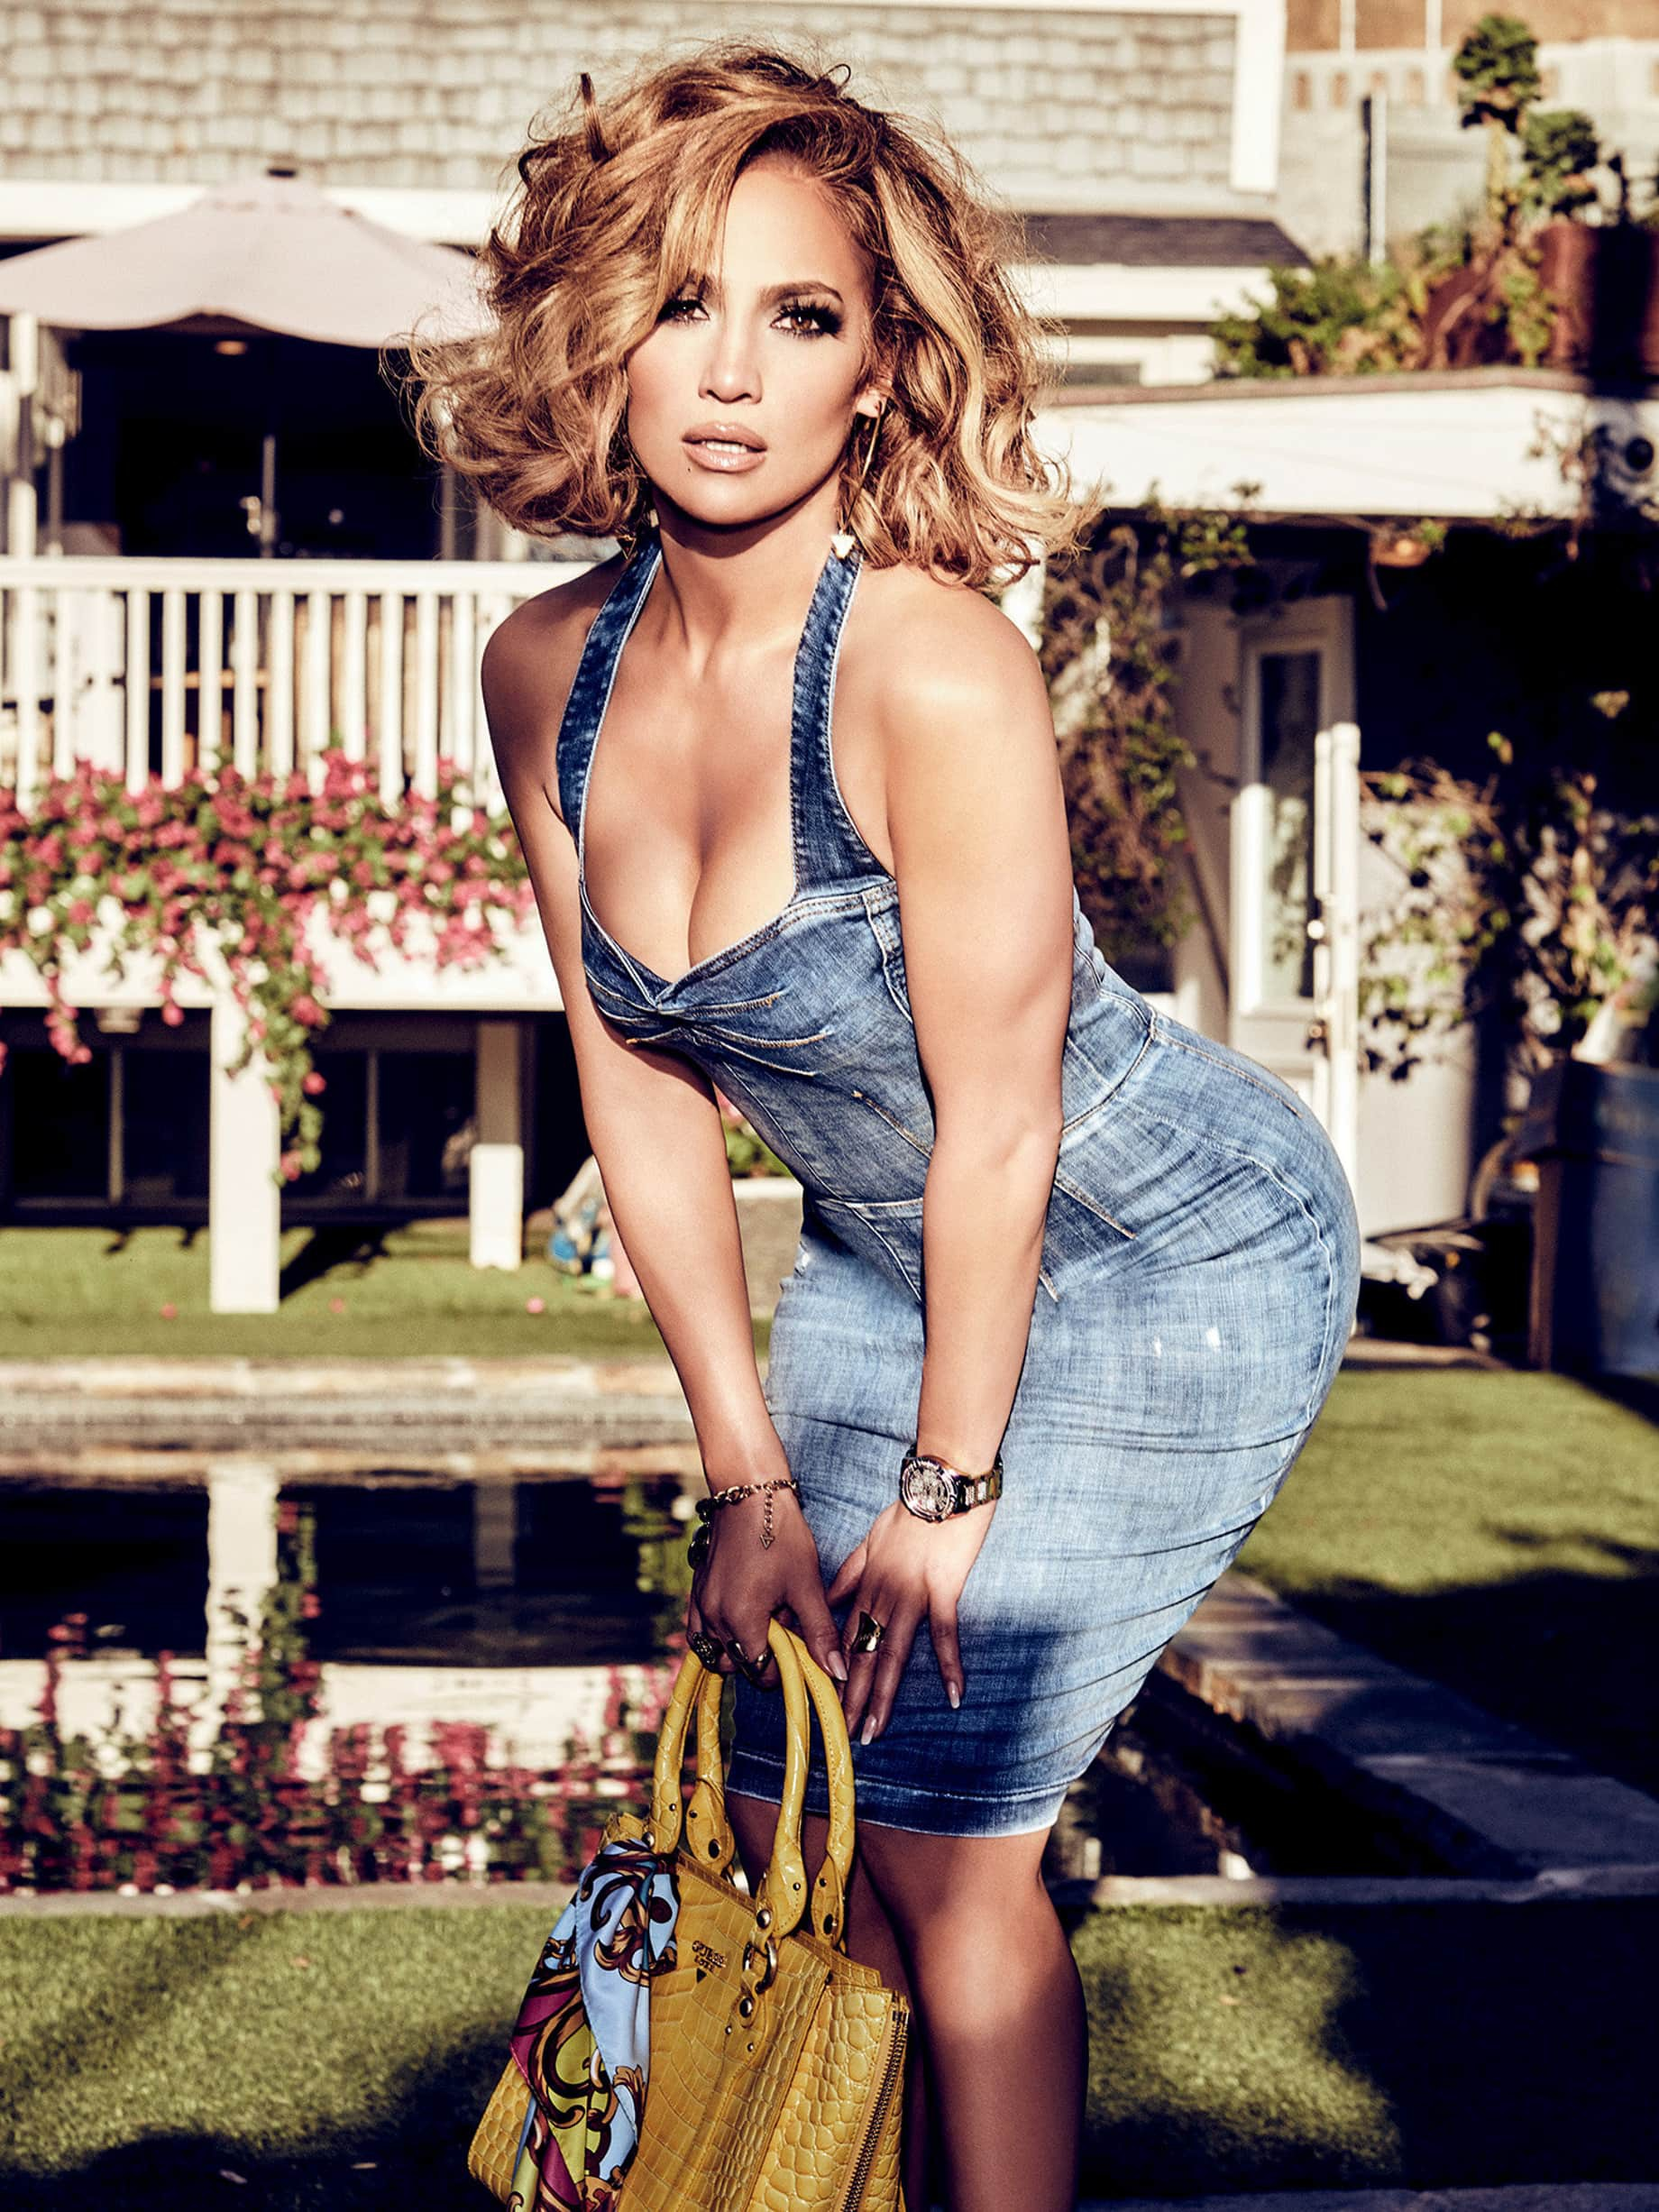 Jennifer Lopez - Sexy Ass and Boobs in Guess Girl Spring 2020 Campaign - Hot Celebs Home